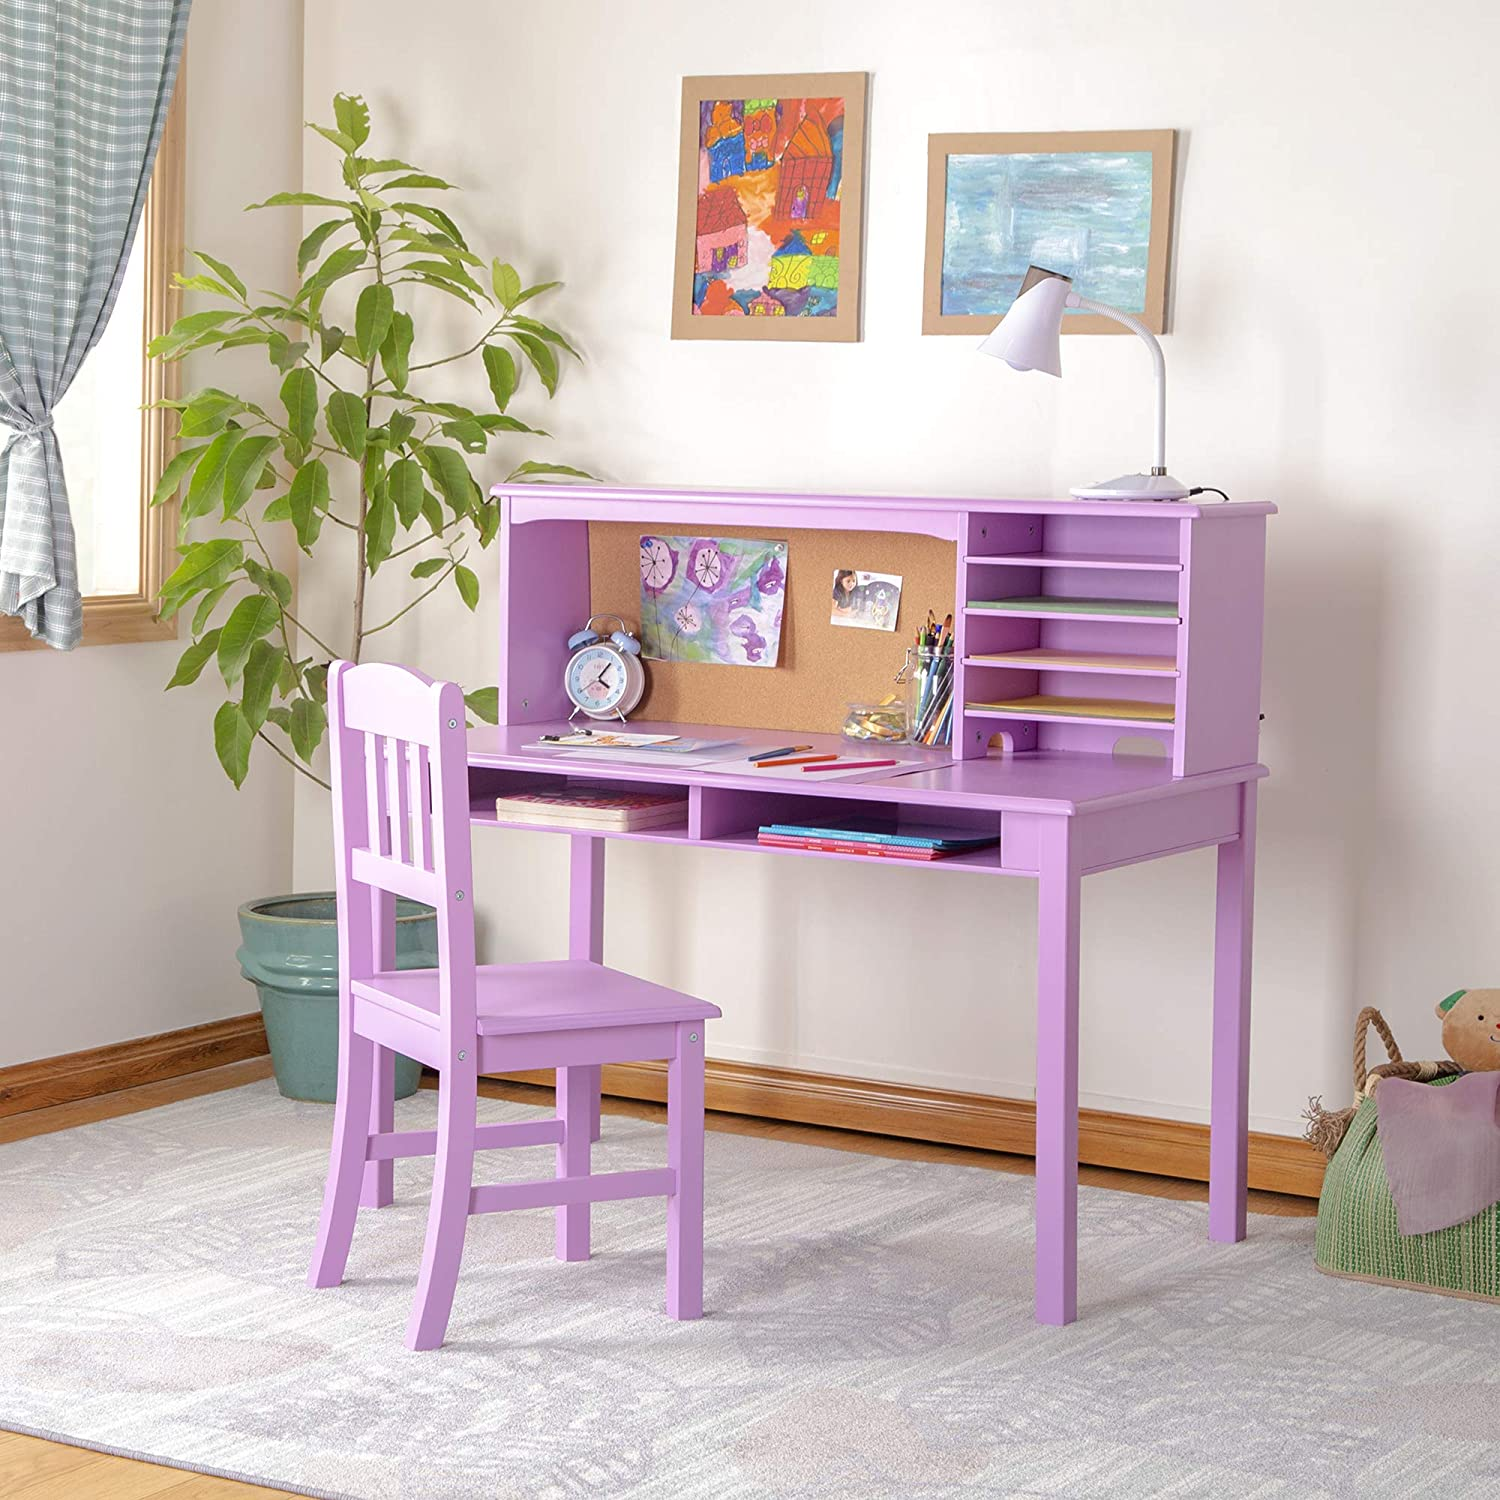 Amazon Com Guidecraft Children S Media Desk And Chair Set Lavender Student S Study Computer Workstation With Hutch And Shelves Wooden Kids Bedroom Furniture Home Kitchen